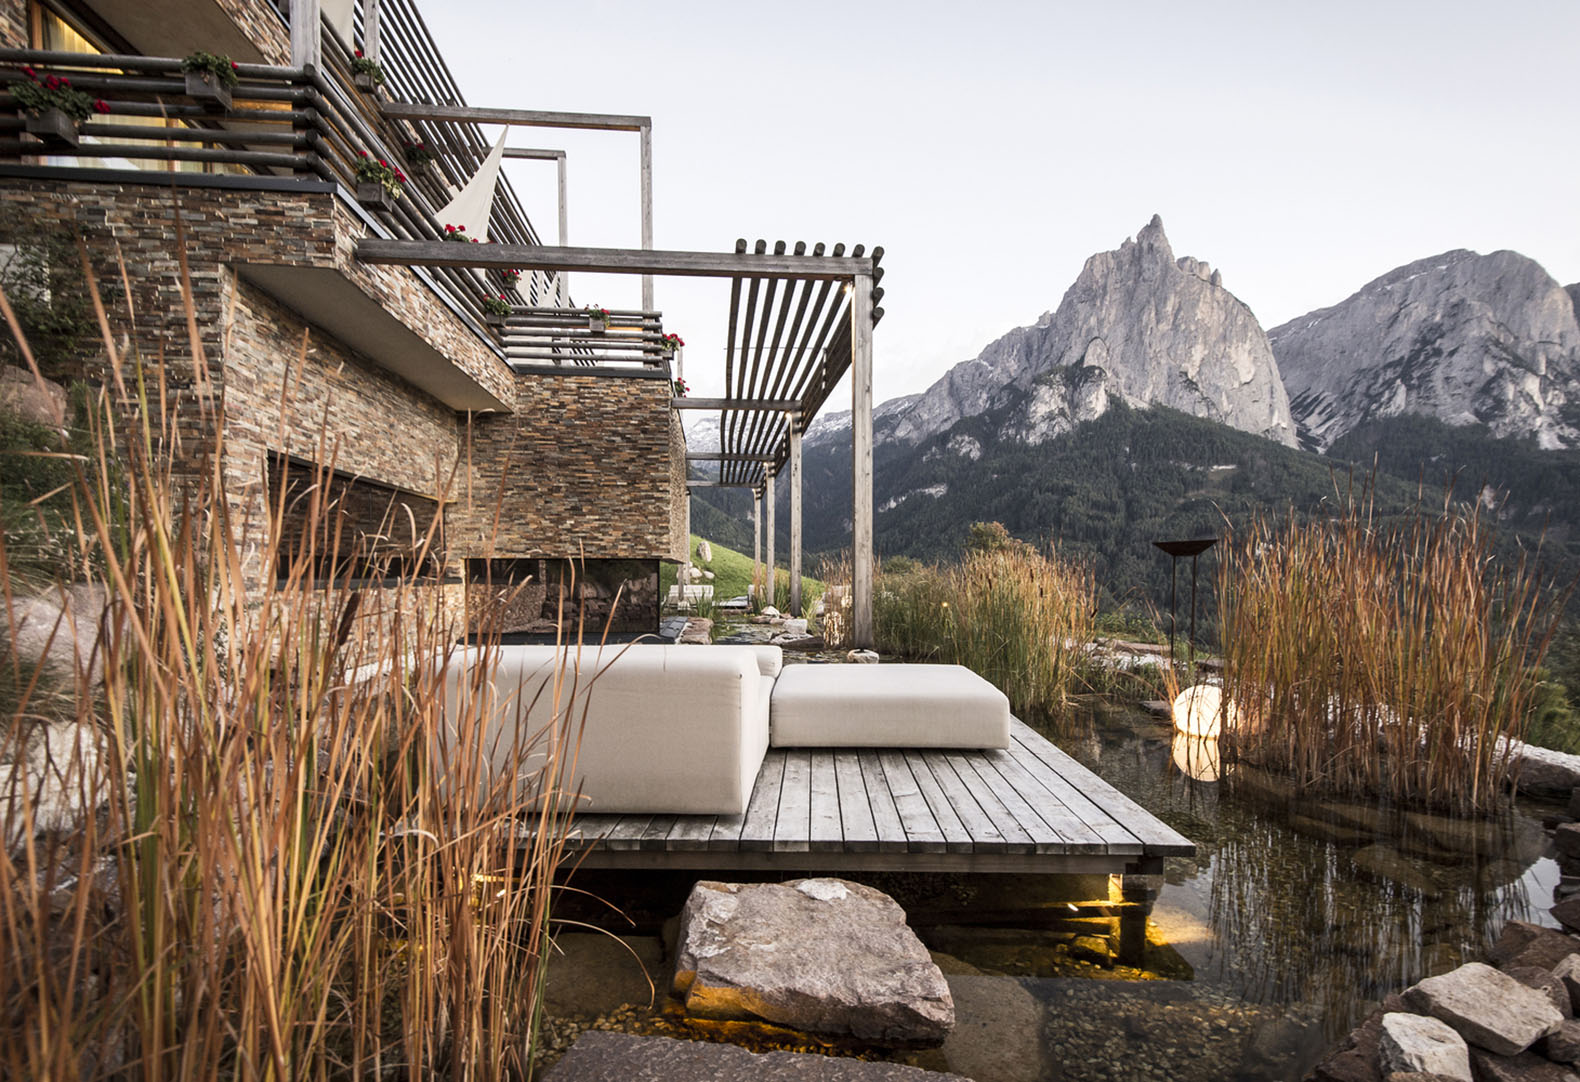 The suites at the spectacular Valentinerhof Hotel make you feel like you are sleeping outside